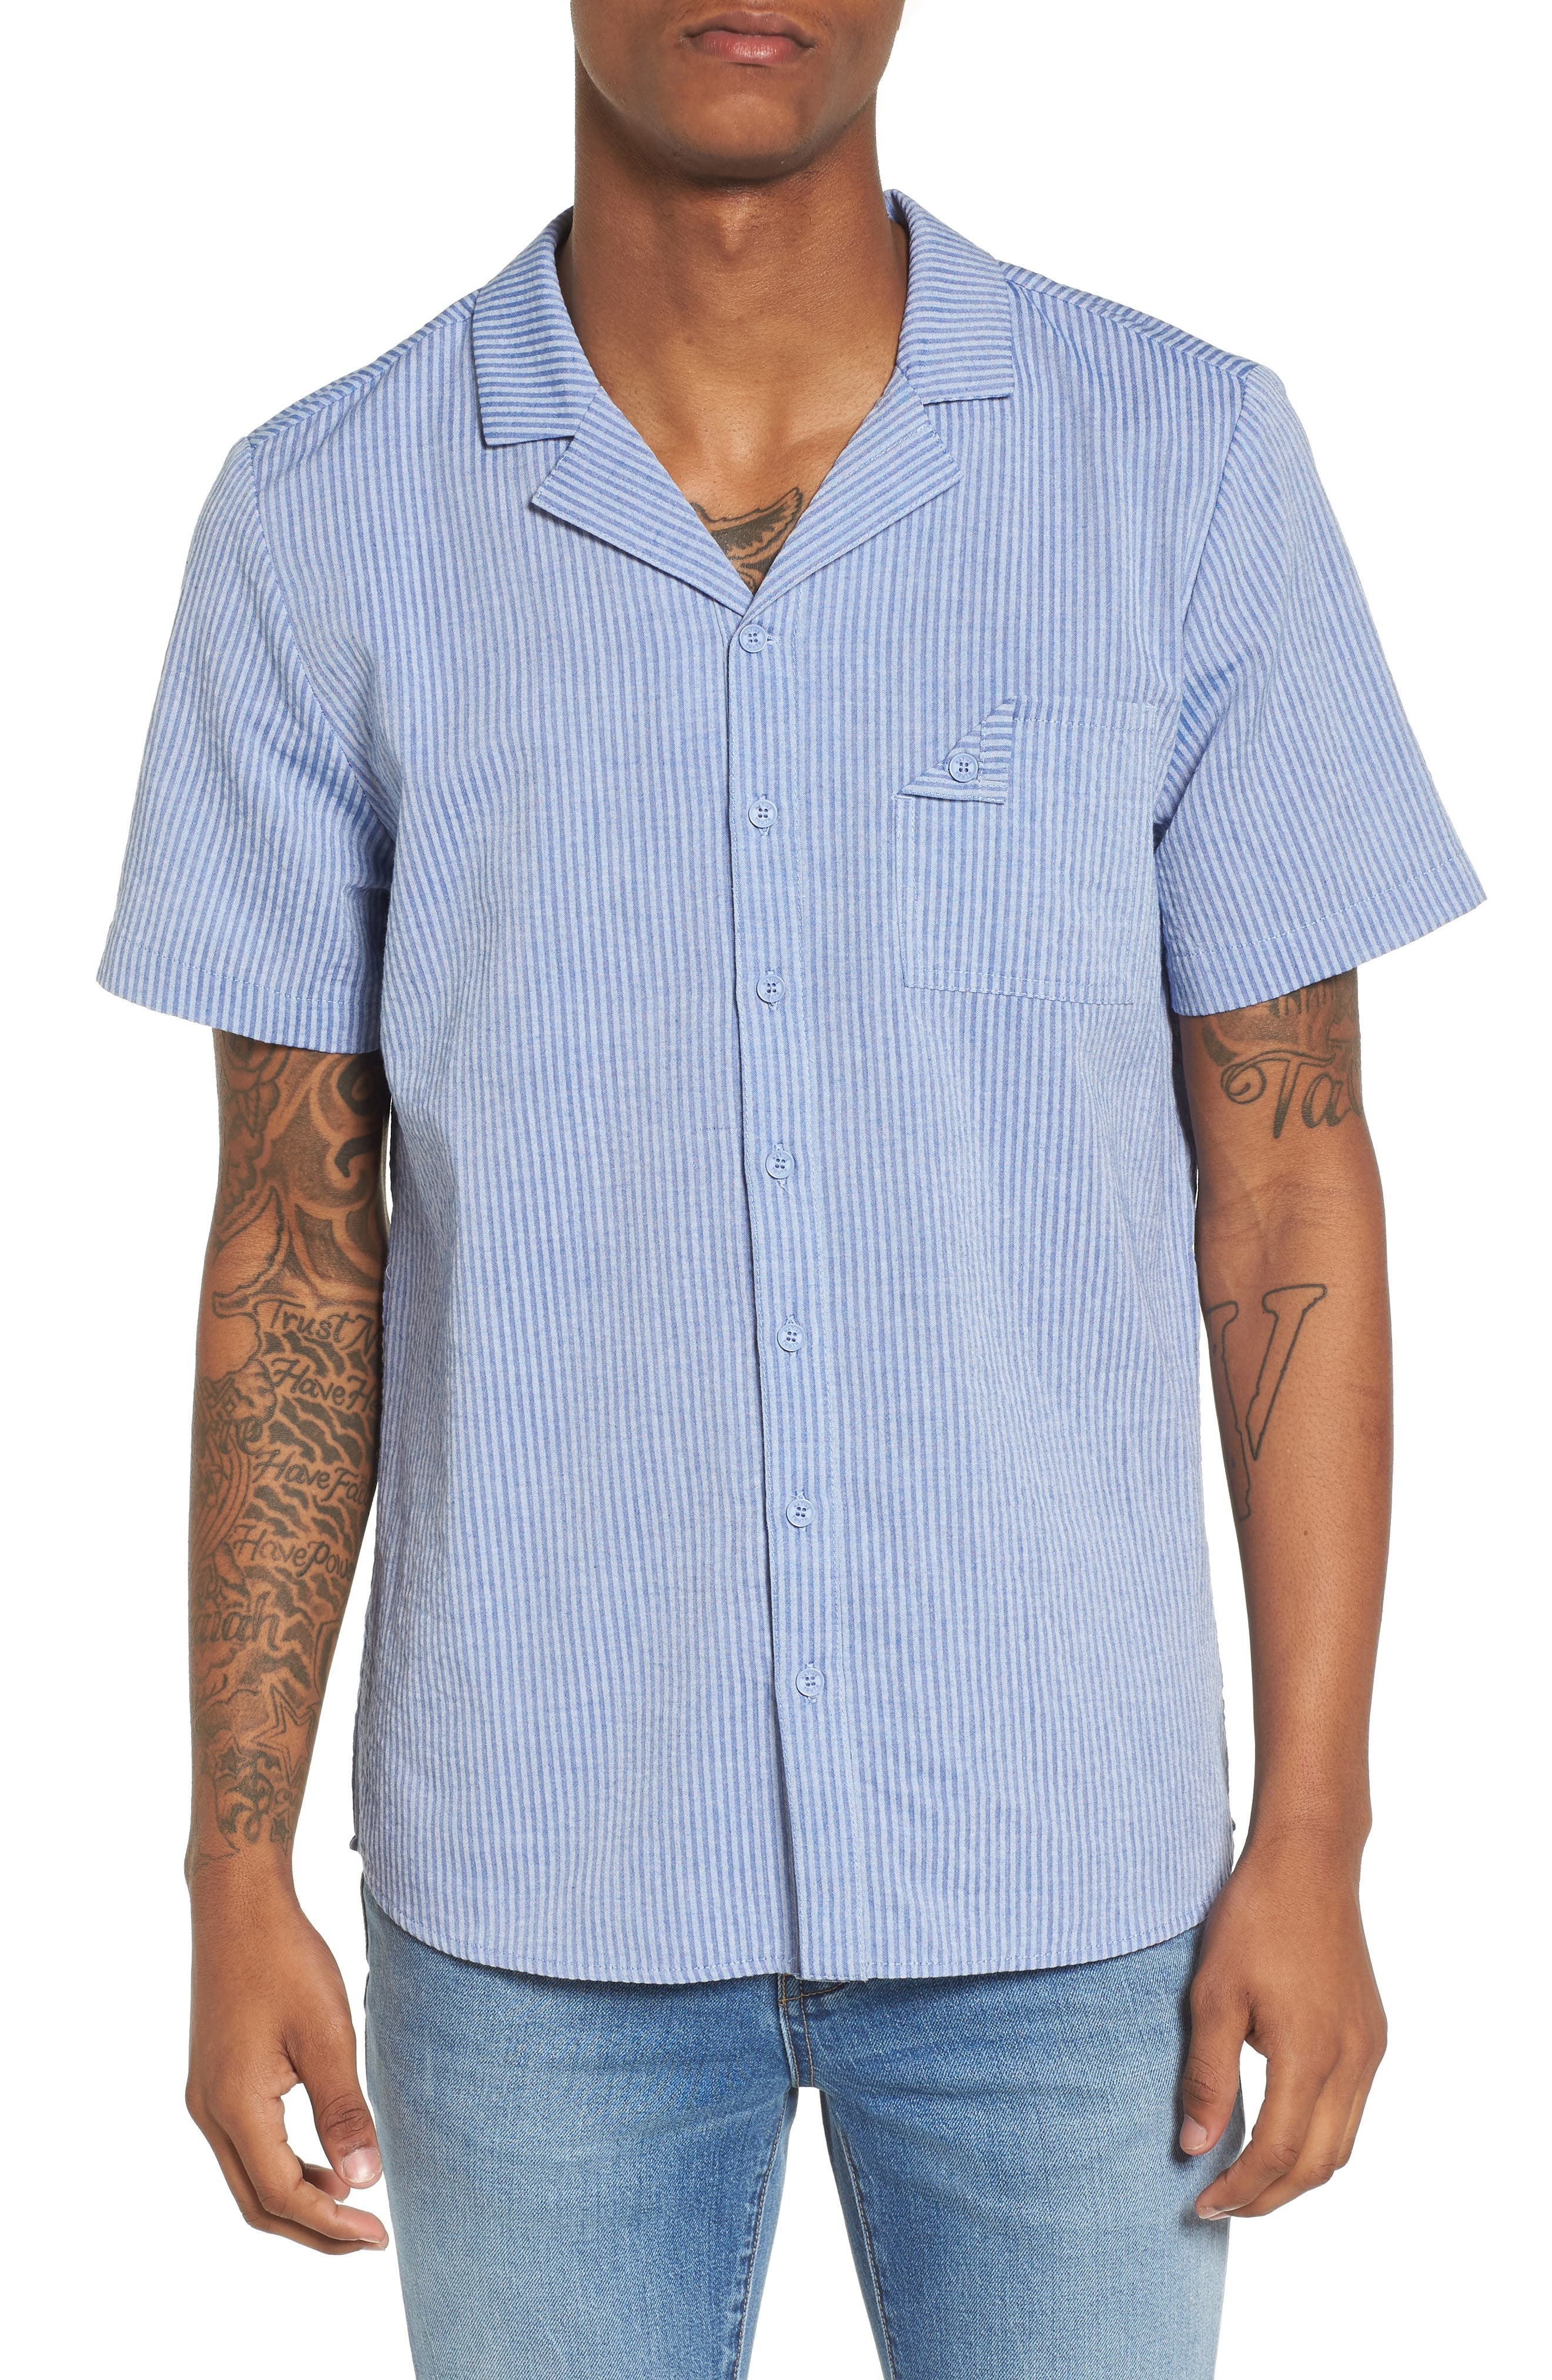 Epiphytes Woven Shirt,                         Main,                         color, 400